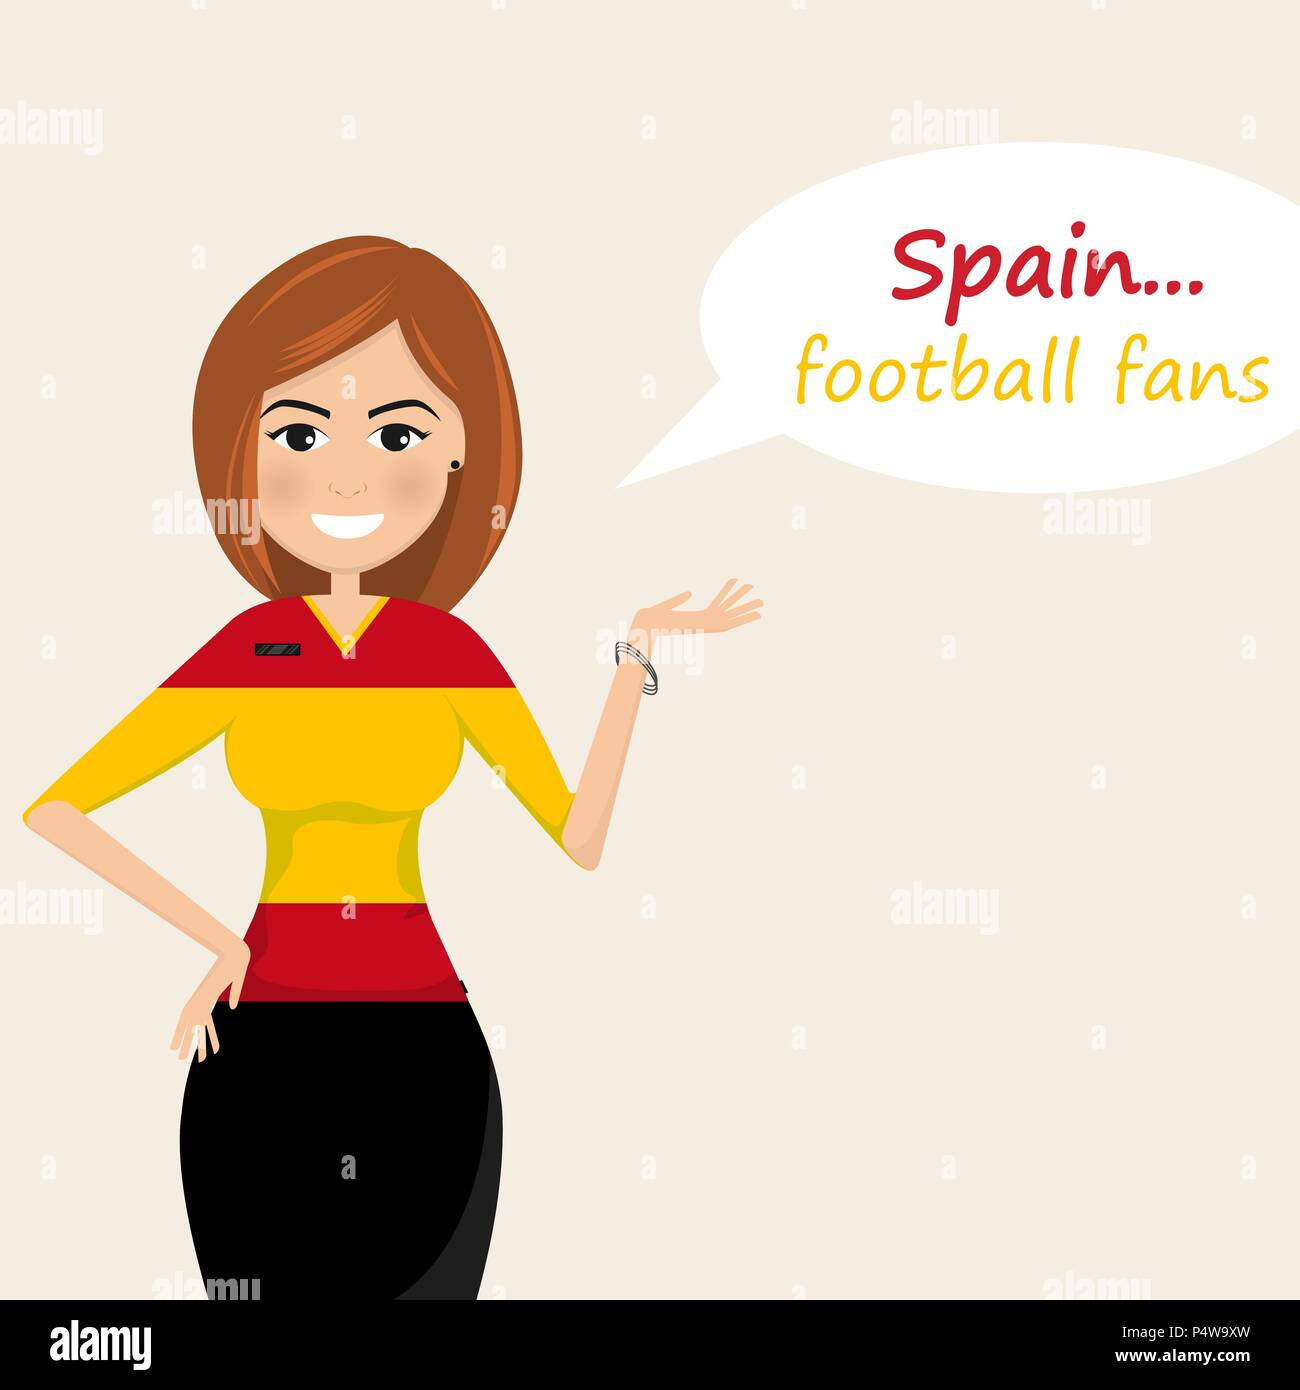 Spain football fans.Cheerful soccer fans, sports images.Young woman,Pretty girl sign.Happy fans are cheering for their team.Vector illustration - Stock Vector